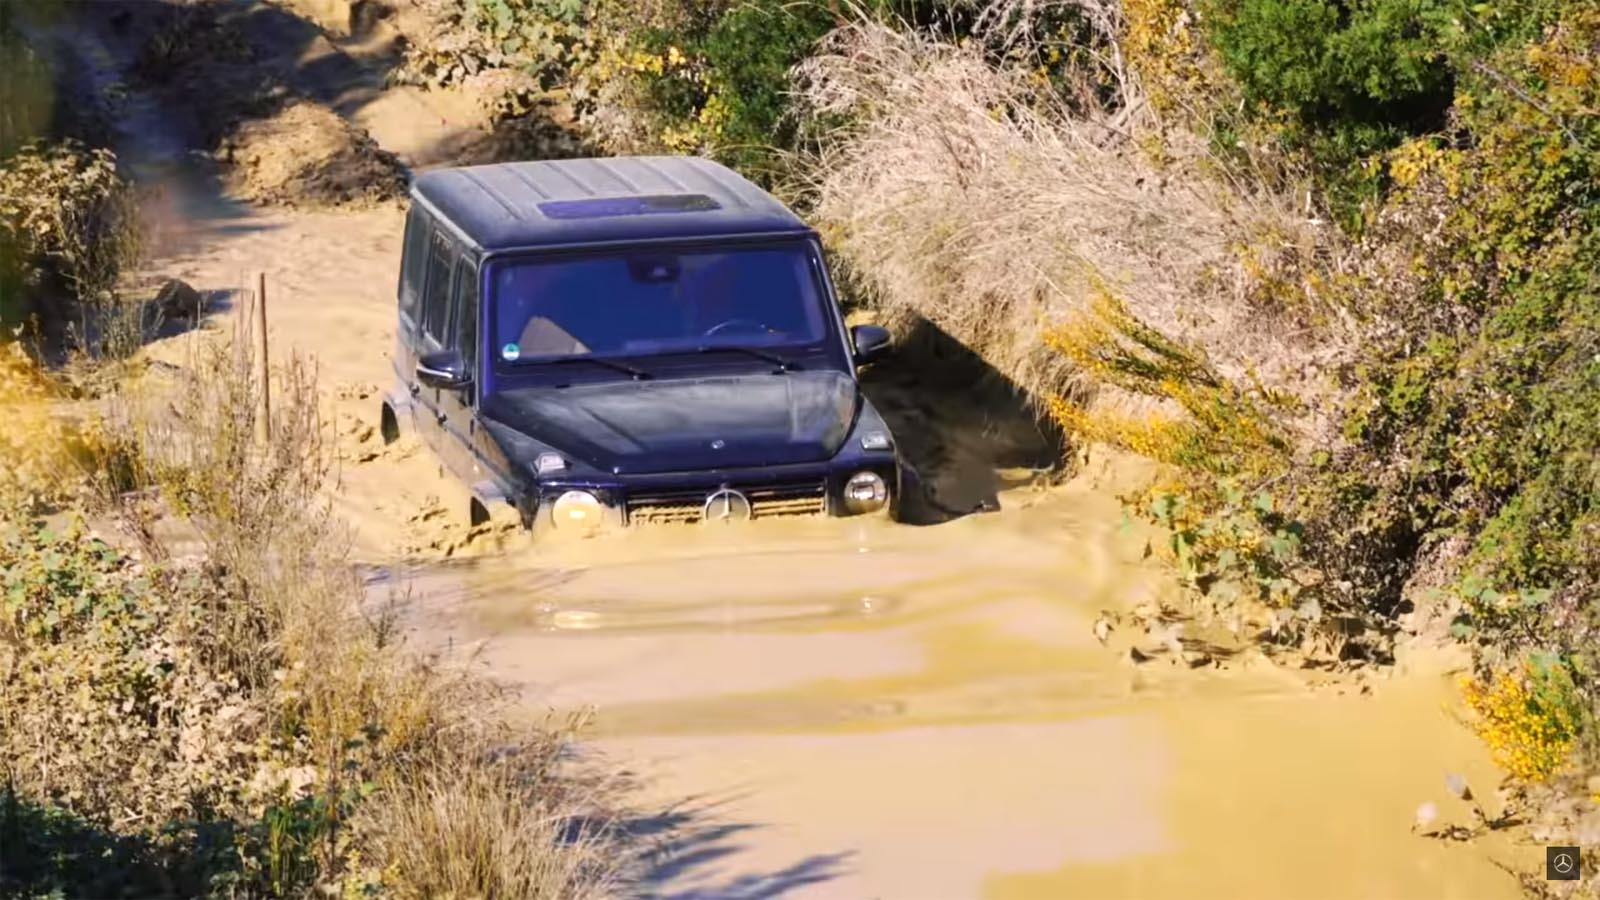 Photo of Off-road μαθήμα με τη νέα Mercedes G-Class [vid]